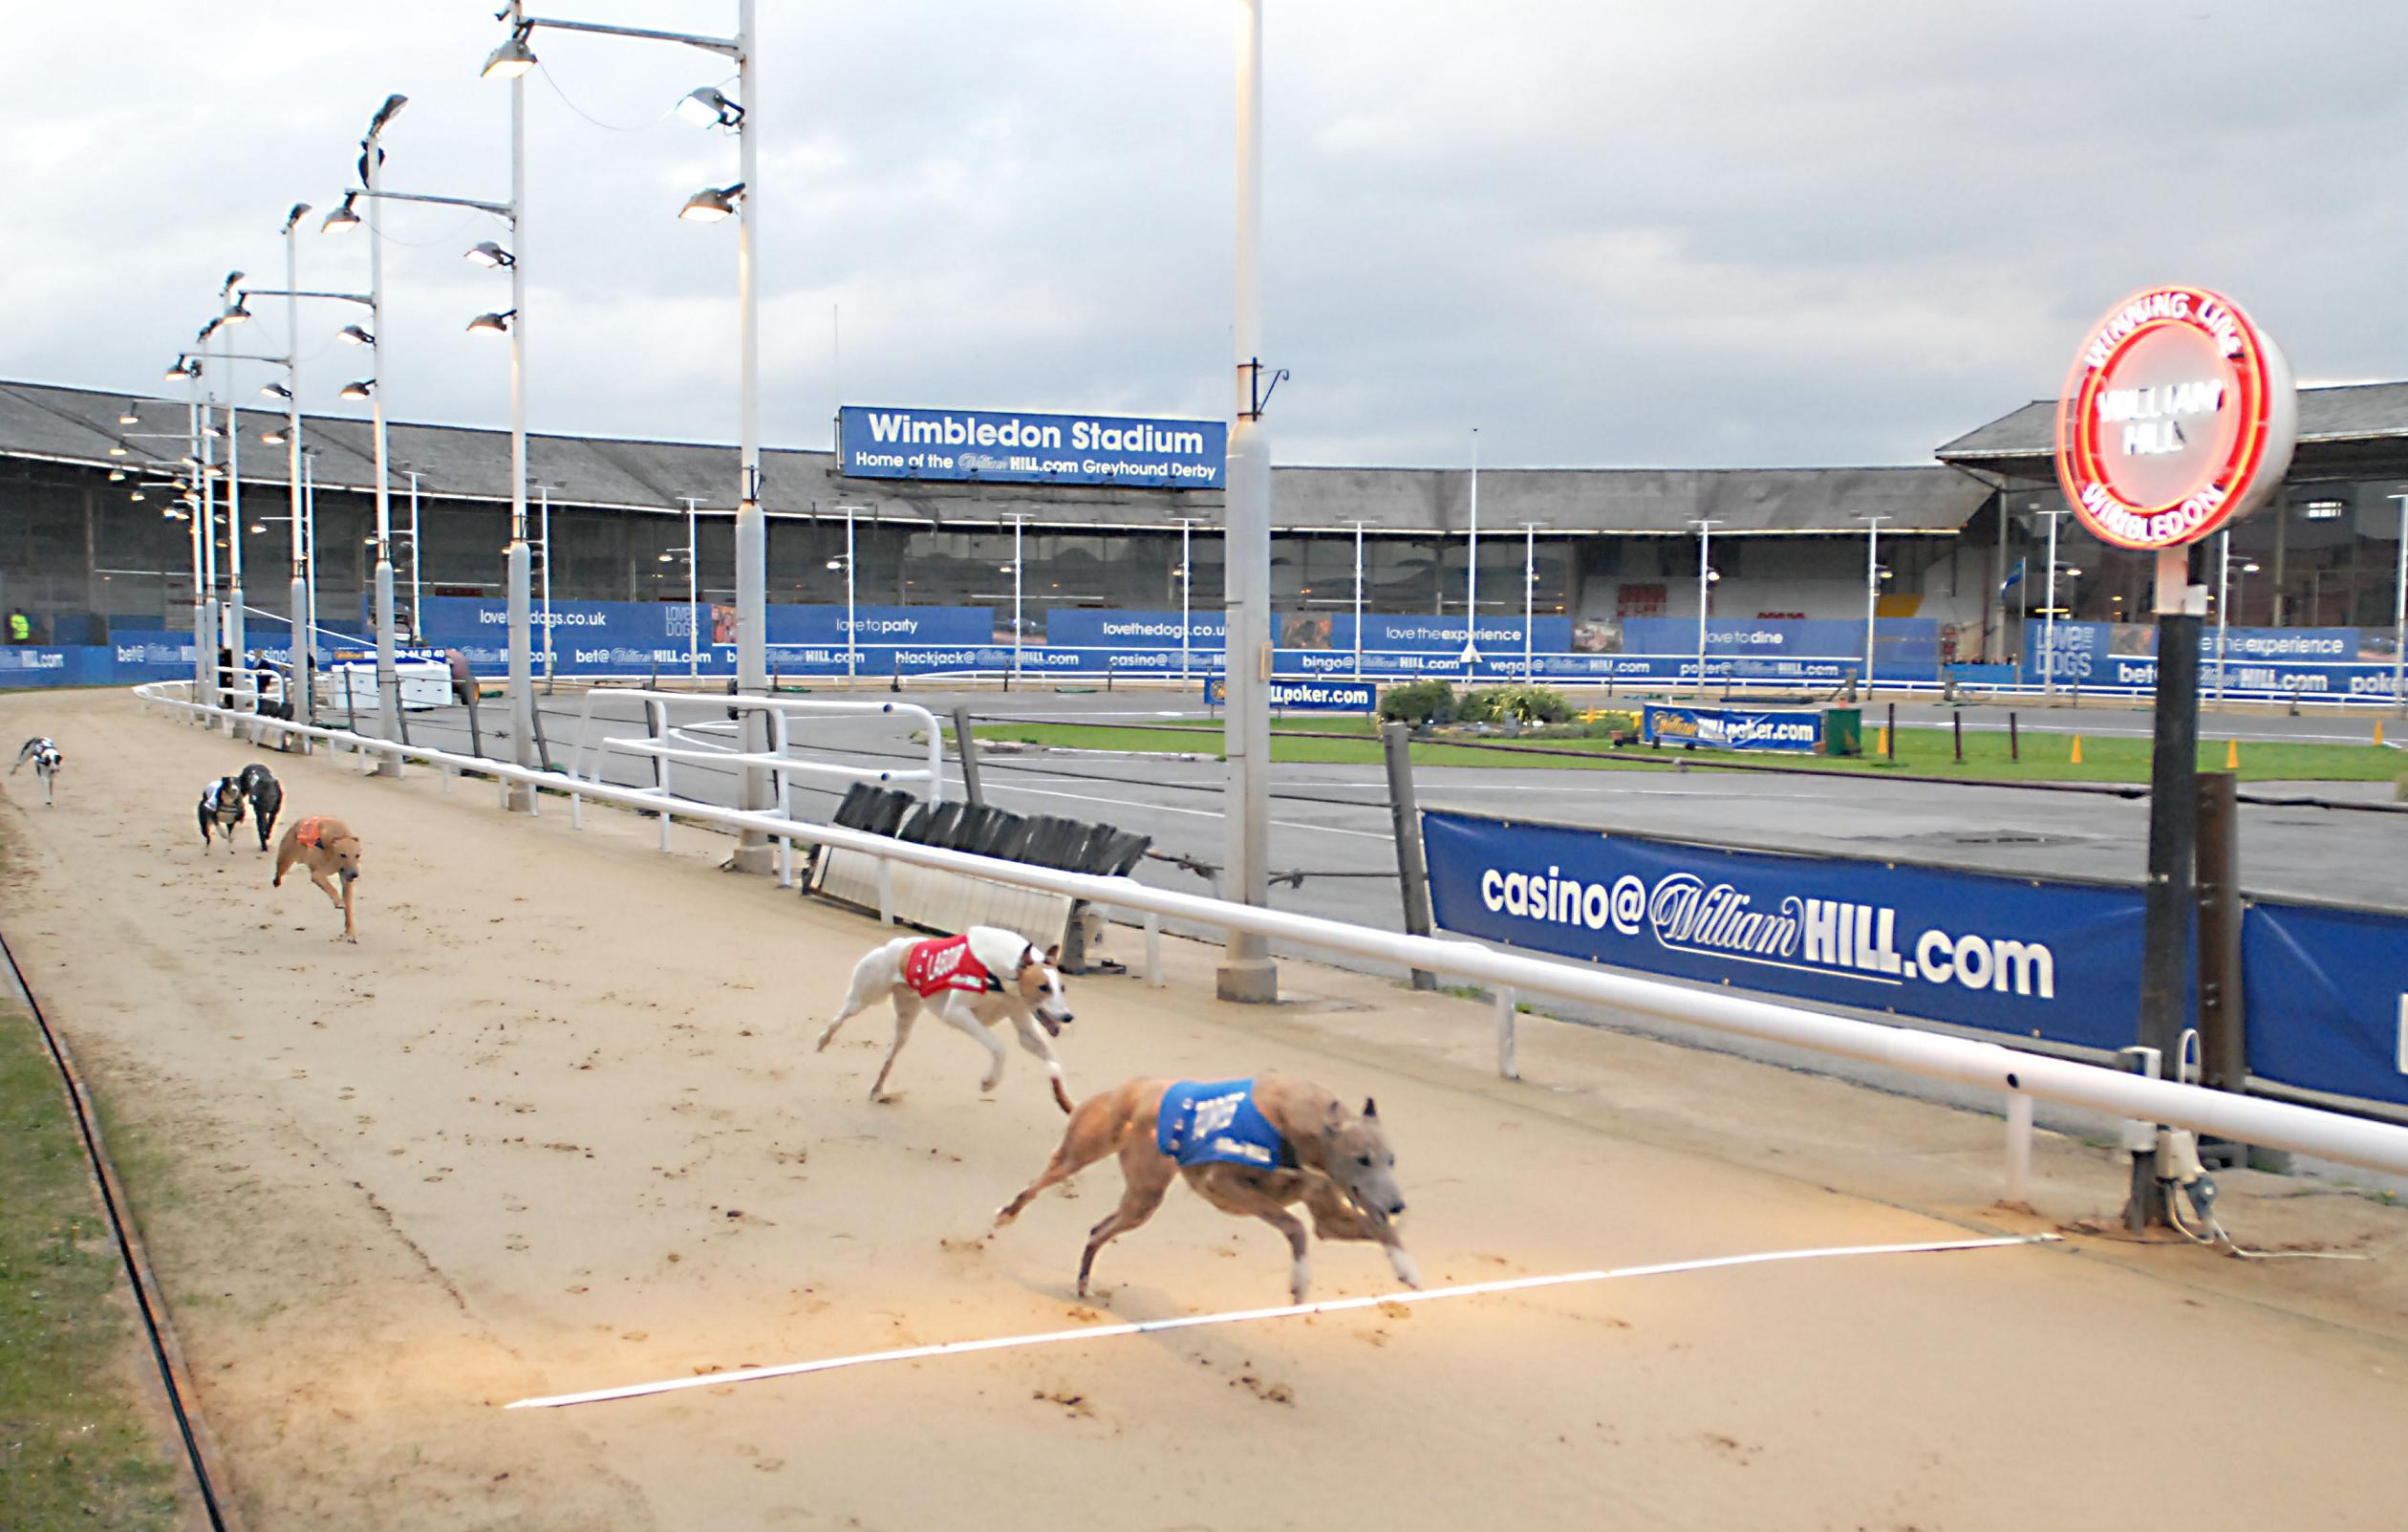 The Plough Lane venue is currently used for greyhound racing